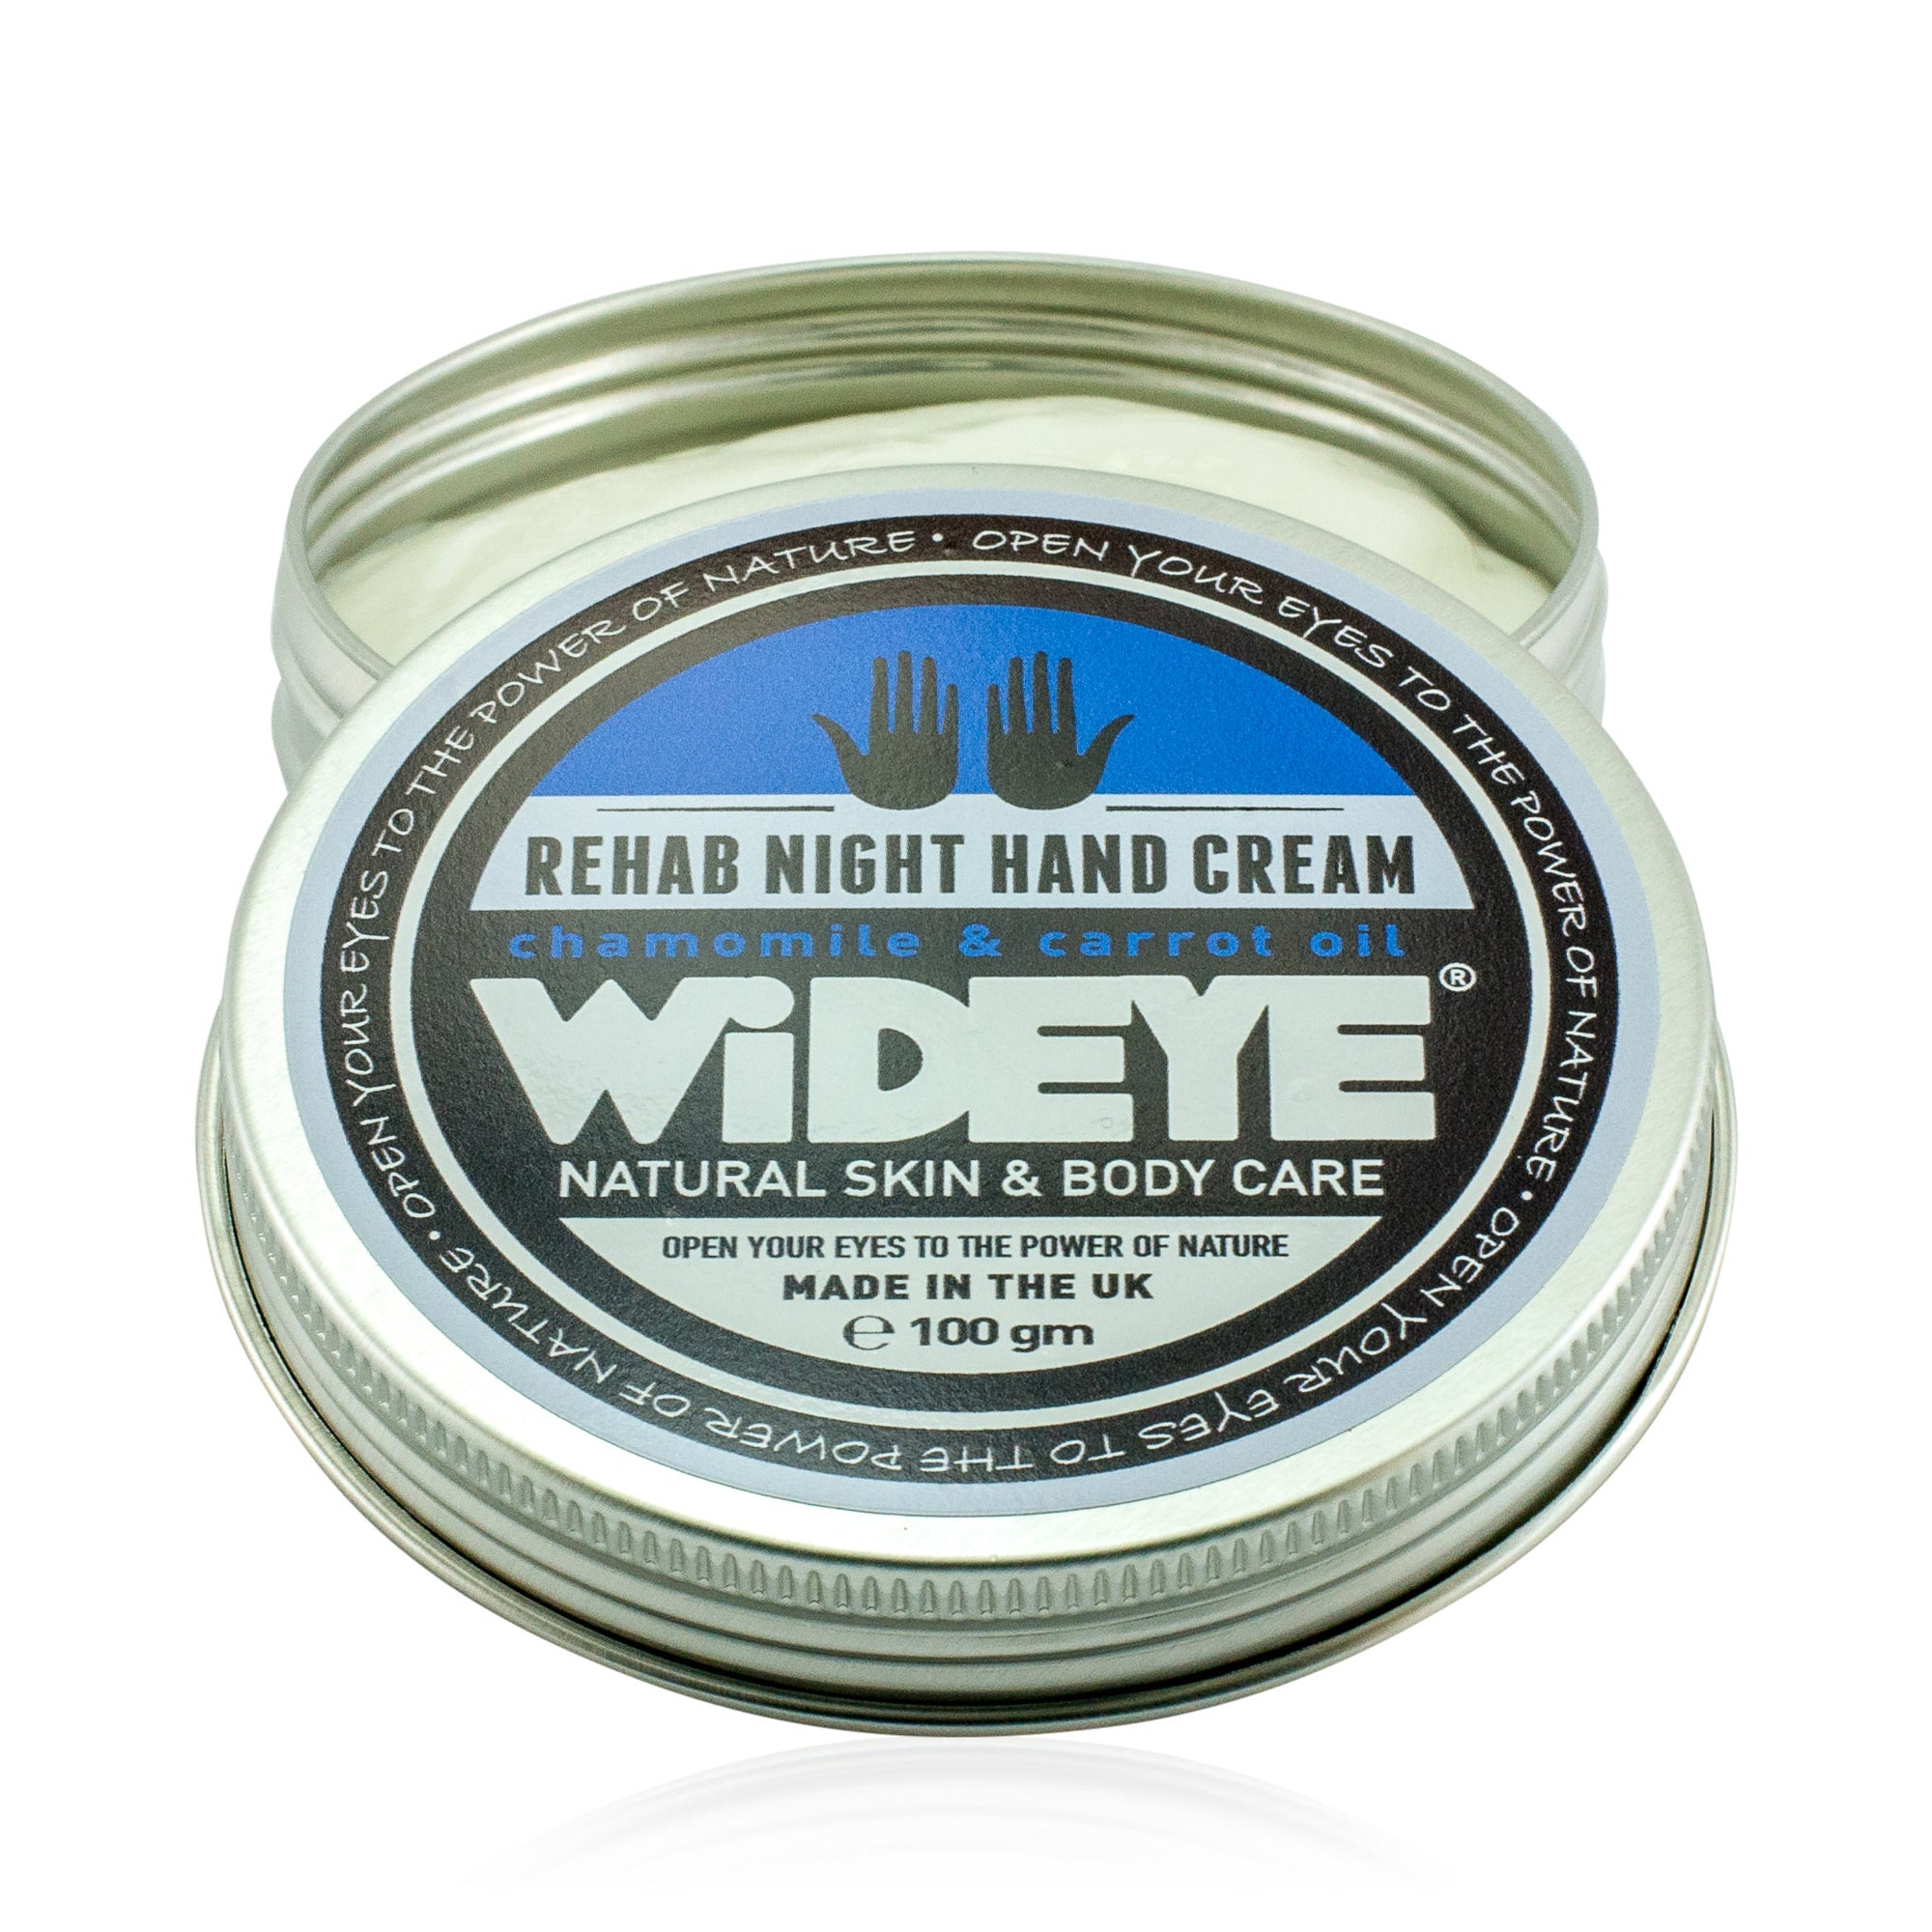 Natural vegan skincare 'Rehab' night hand cream in aluminium tin with lid off, handmade by WiDEYE in Rye.